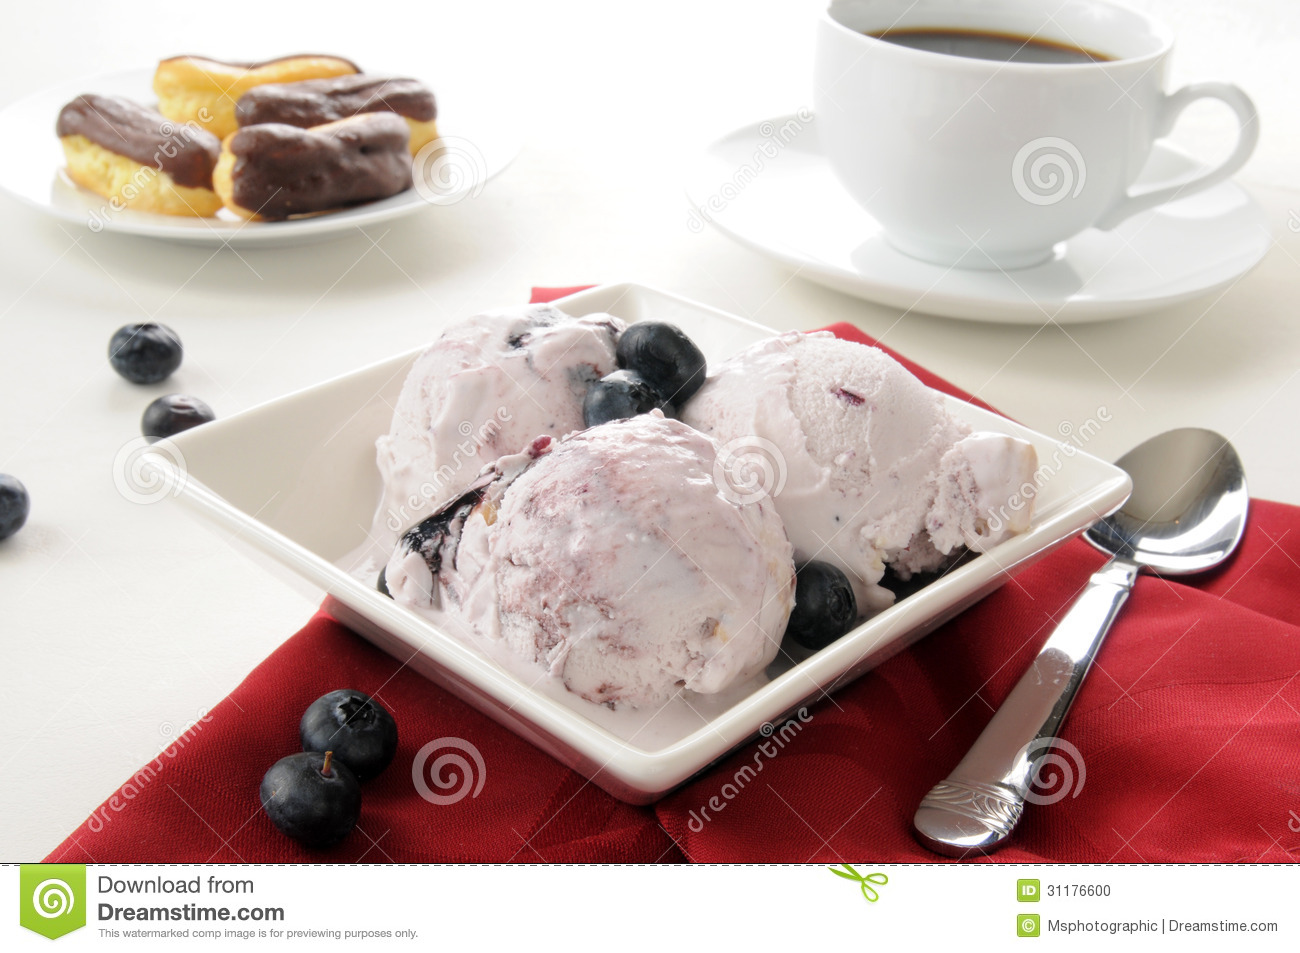 Blueberry cheesecake ice cream with coffee and eclairs.